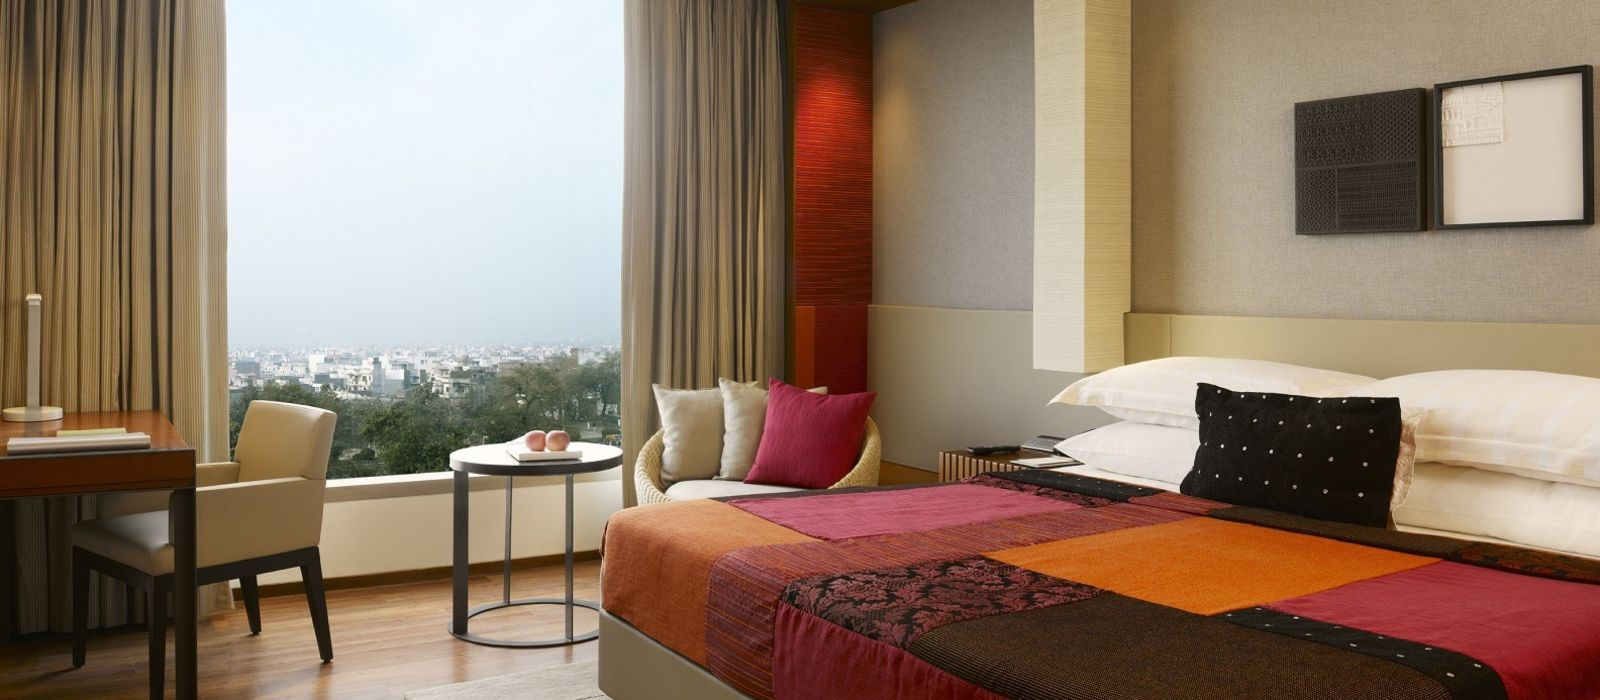 Hotel Hyatt Amritsar North India